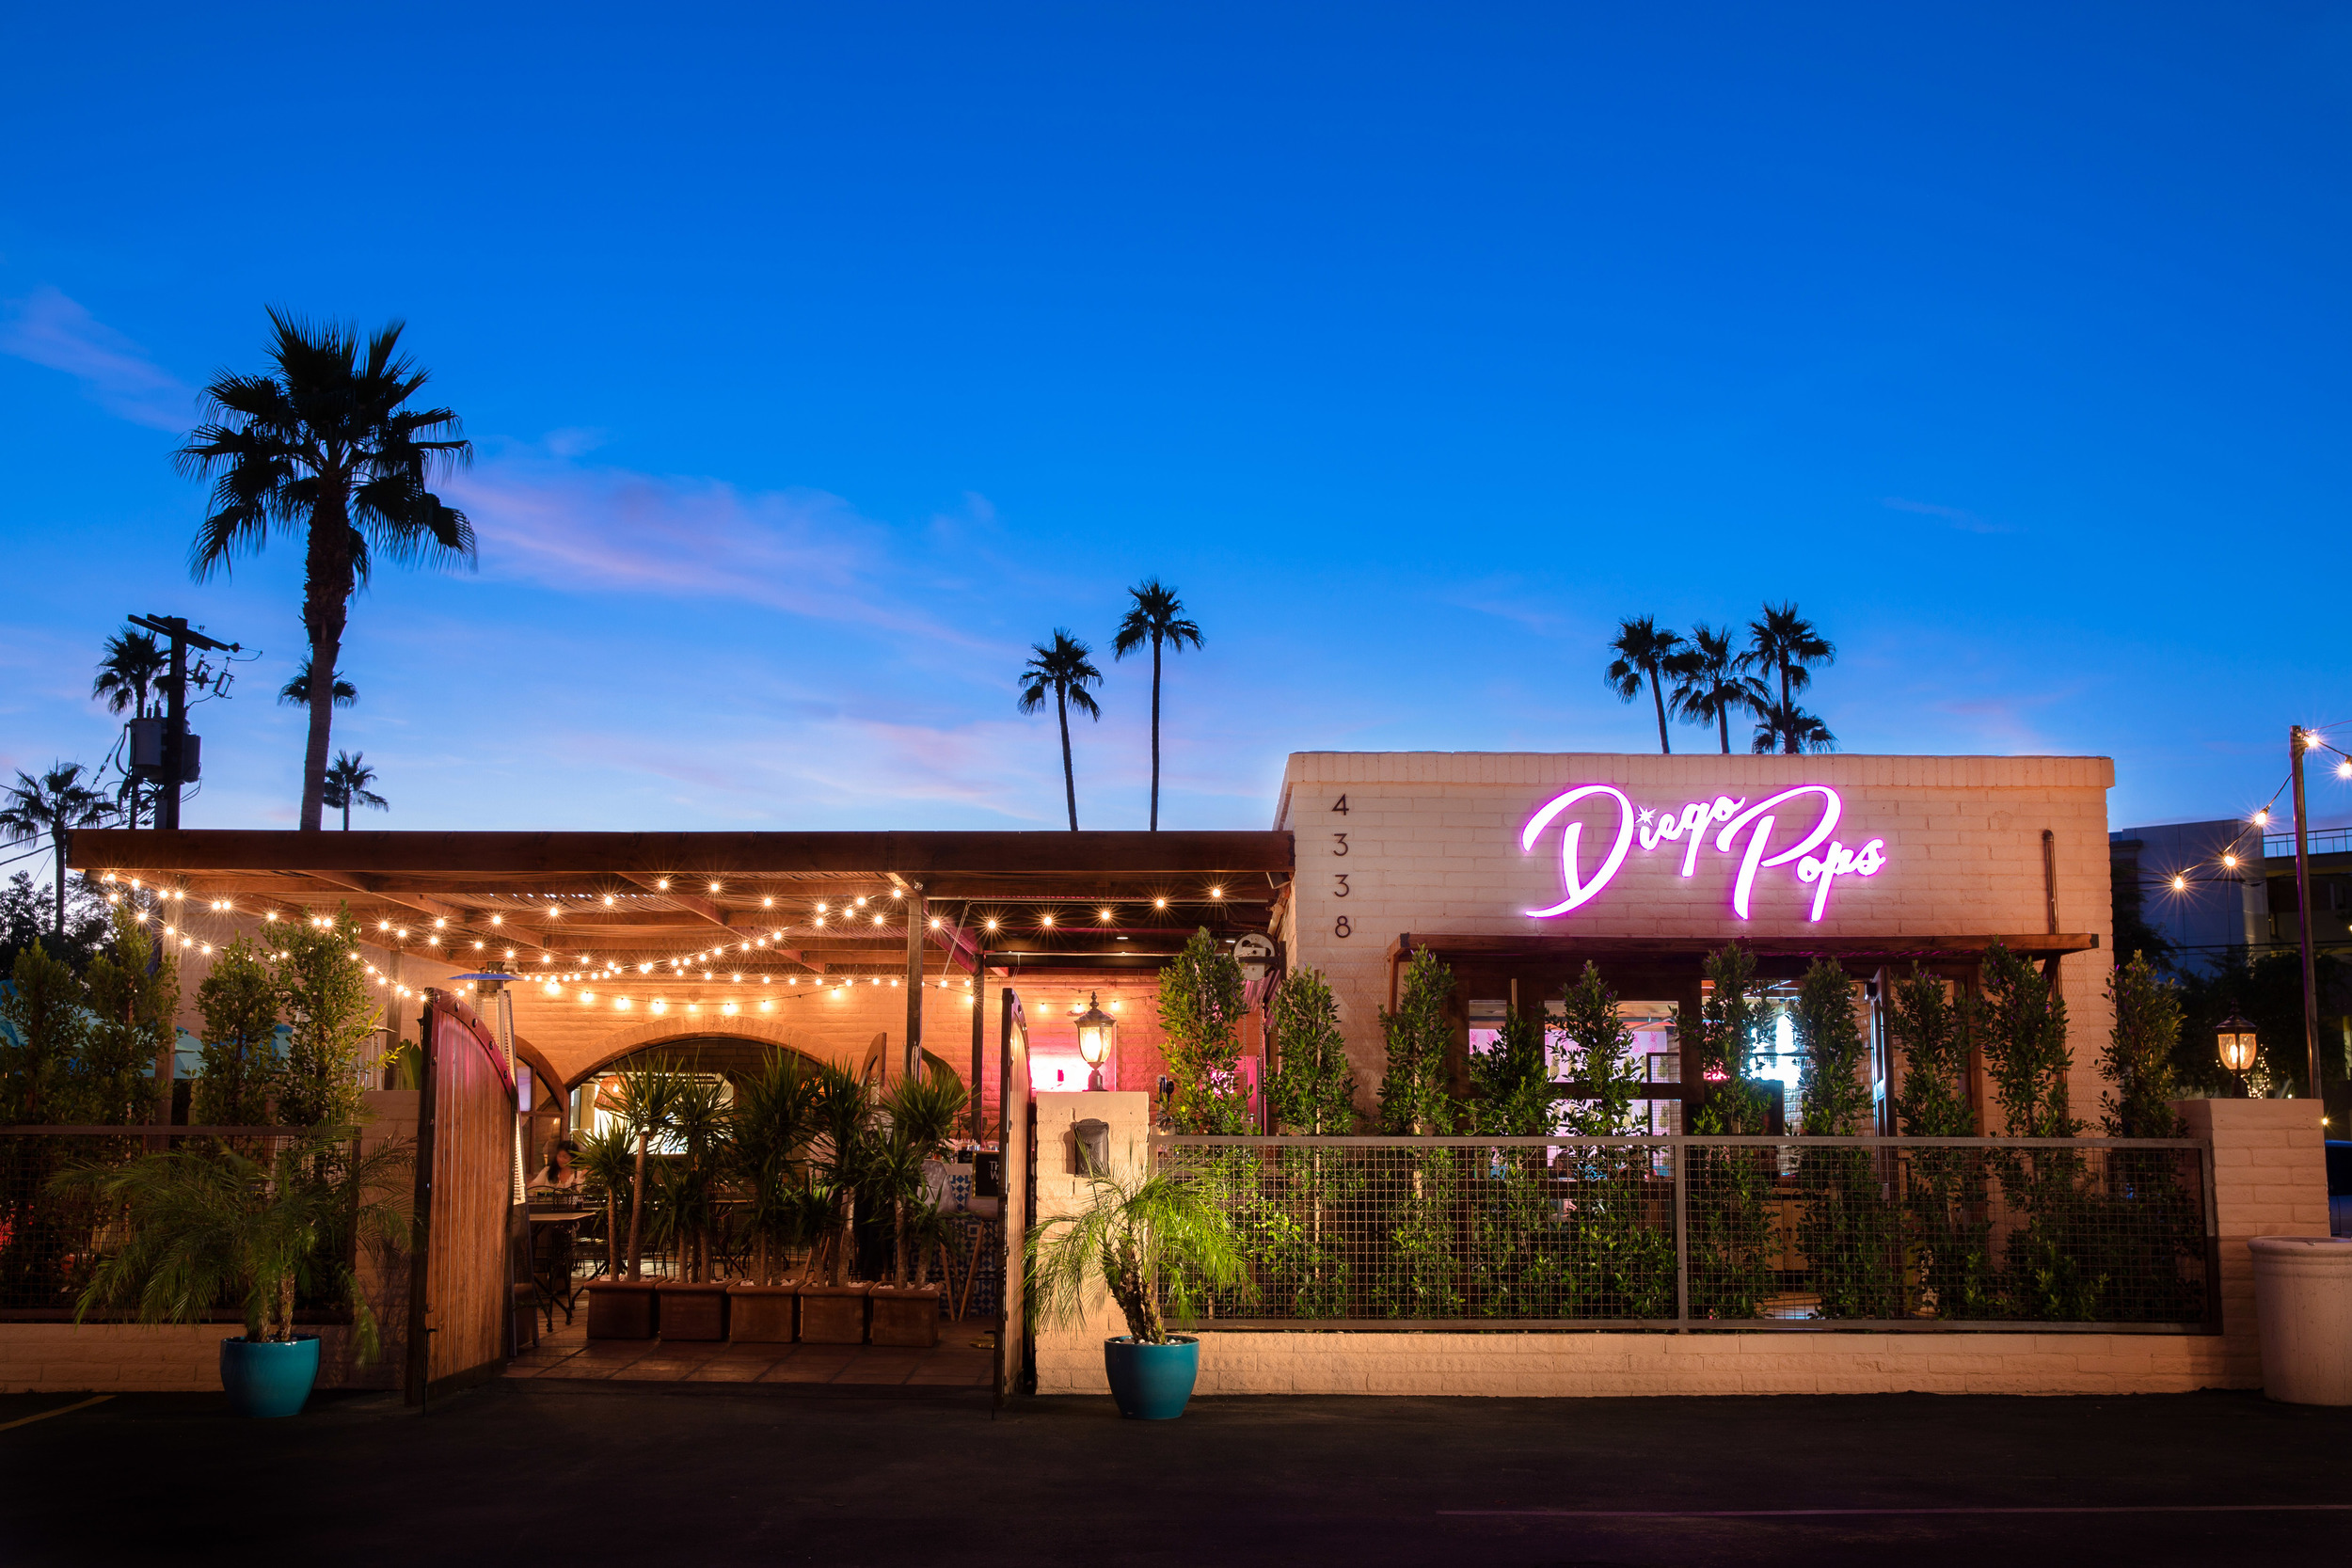 Diego Pops Mexican Restaurant In Old Town Scottsdale